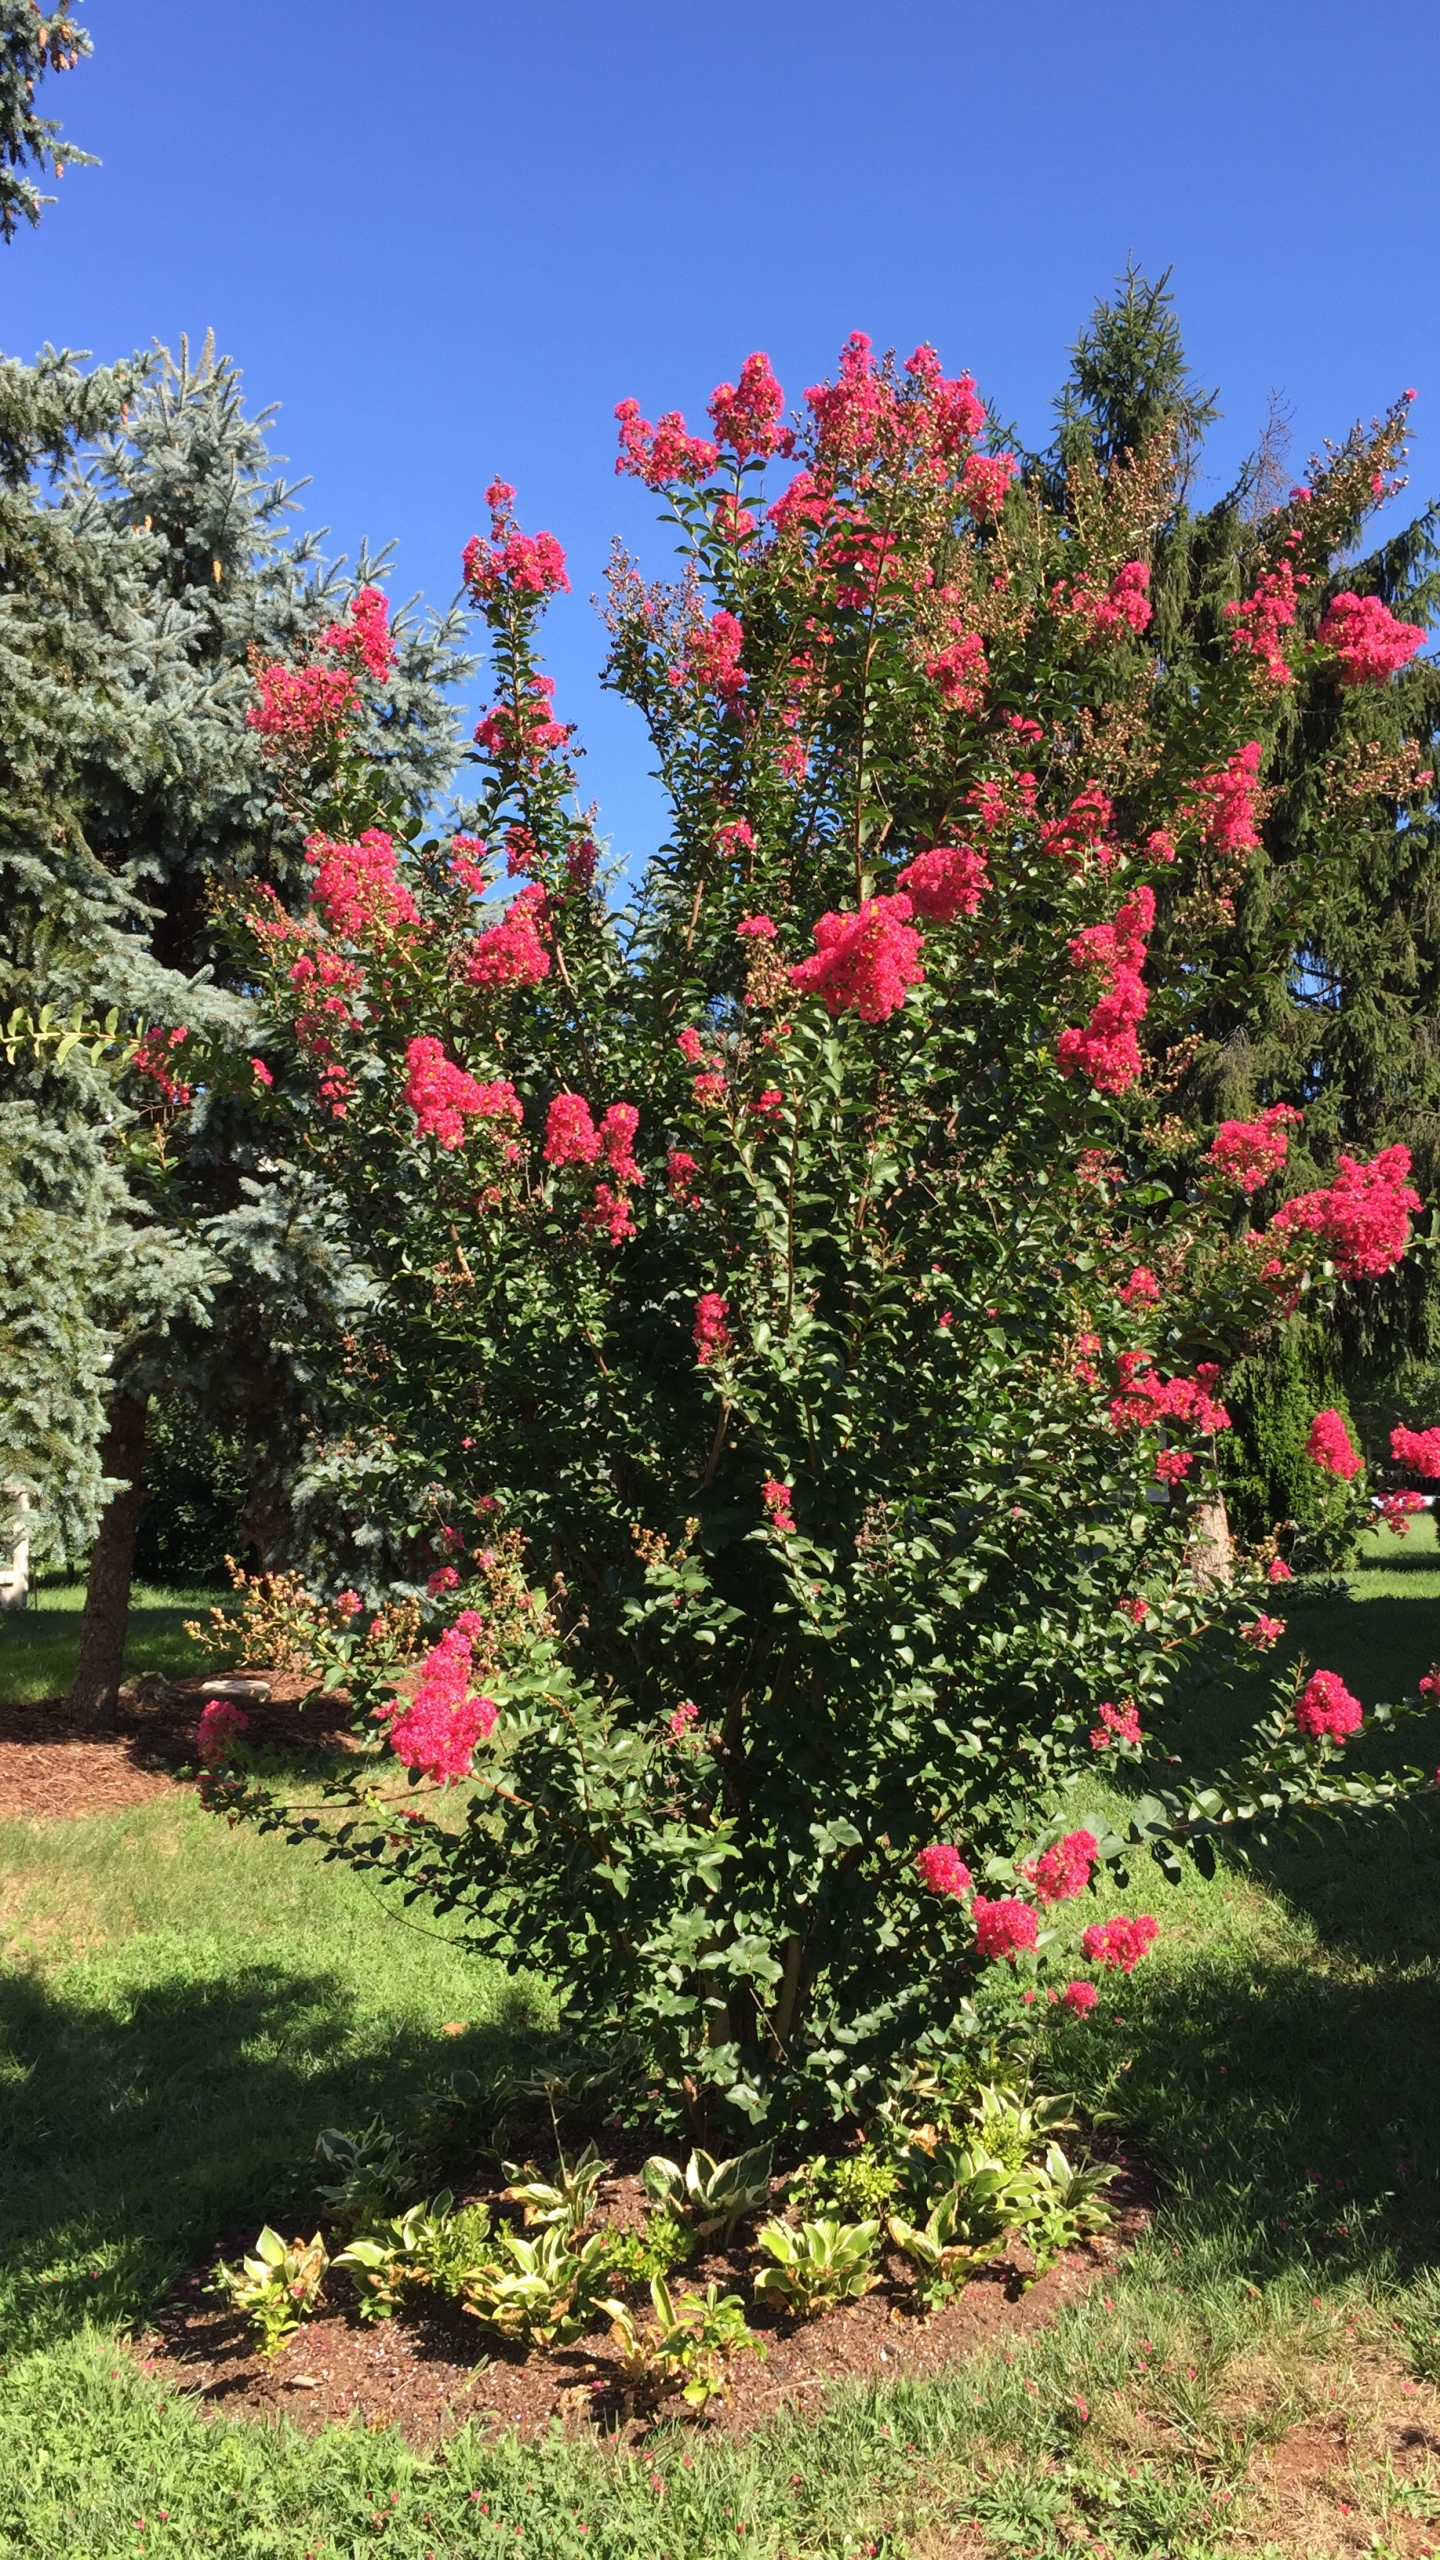 2016-08-07_10_11_08_Crape_Myrtle_in_full_bloom_along_Tranquility_Court_in_the_Franklin_Farm_section_of_Oak_Hill,_Fairfax_County,_Virginia_1521626058768.jpg